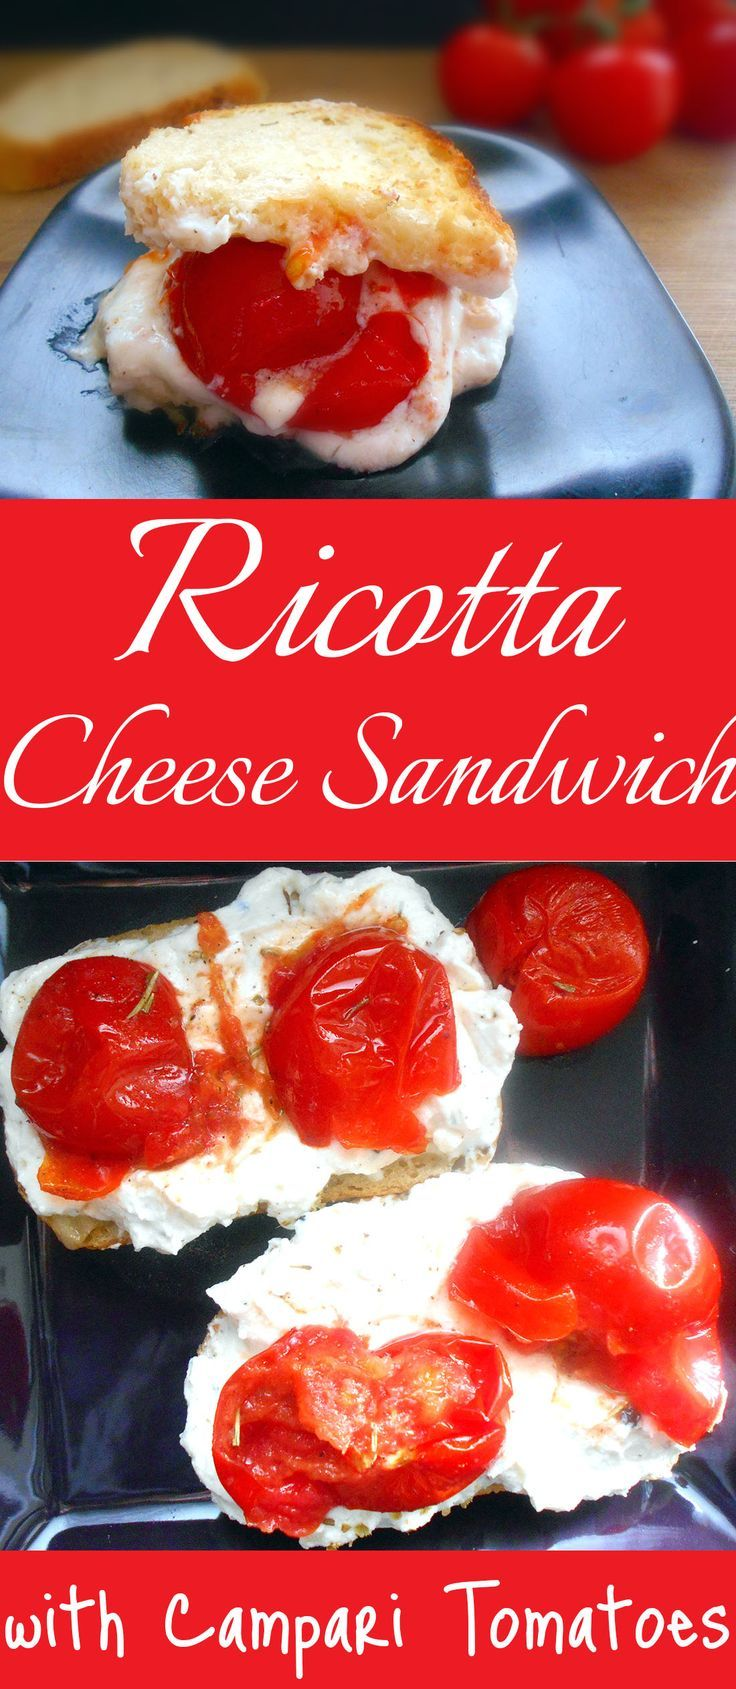 I used a vegetarian version of Ricotta Cheese for this grilled cheese recipe.  The Campari tomatoes are the perfect ingredient to this recipe.  They are sweet with only a slight tanginess.